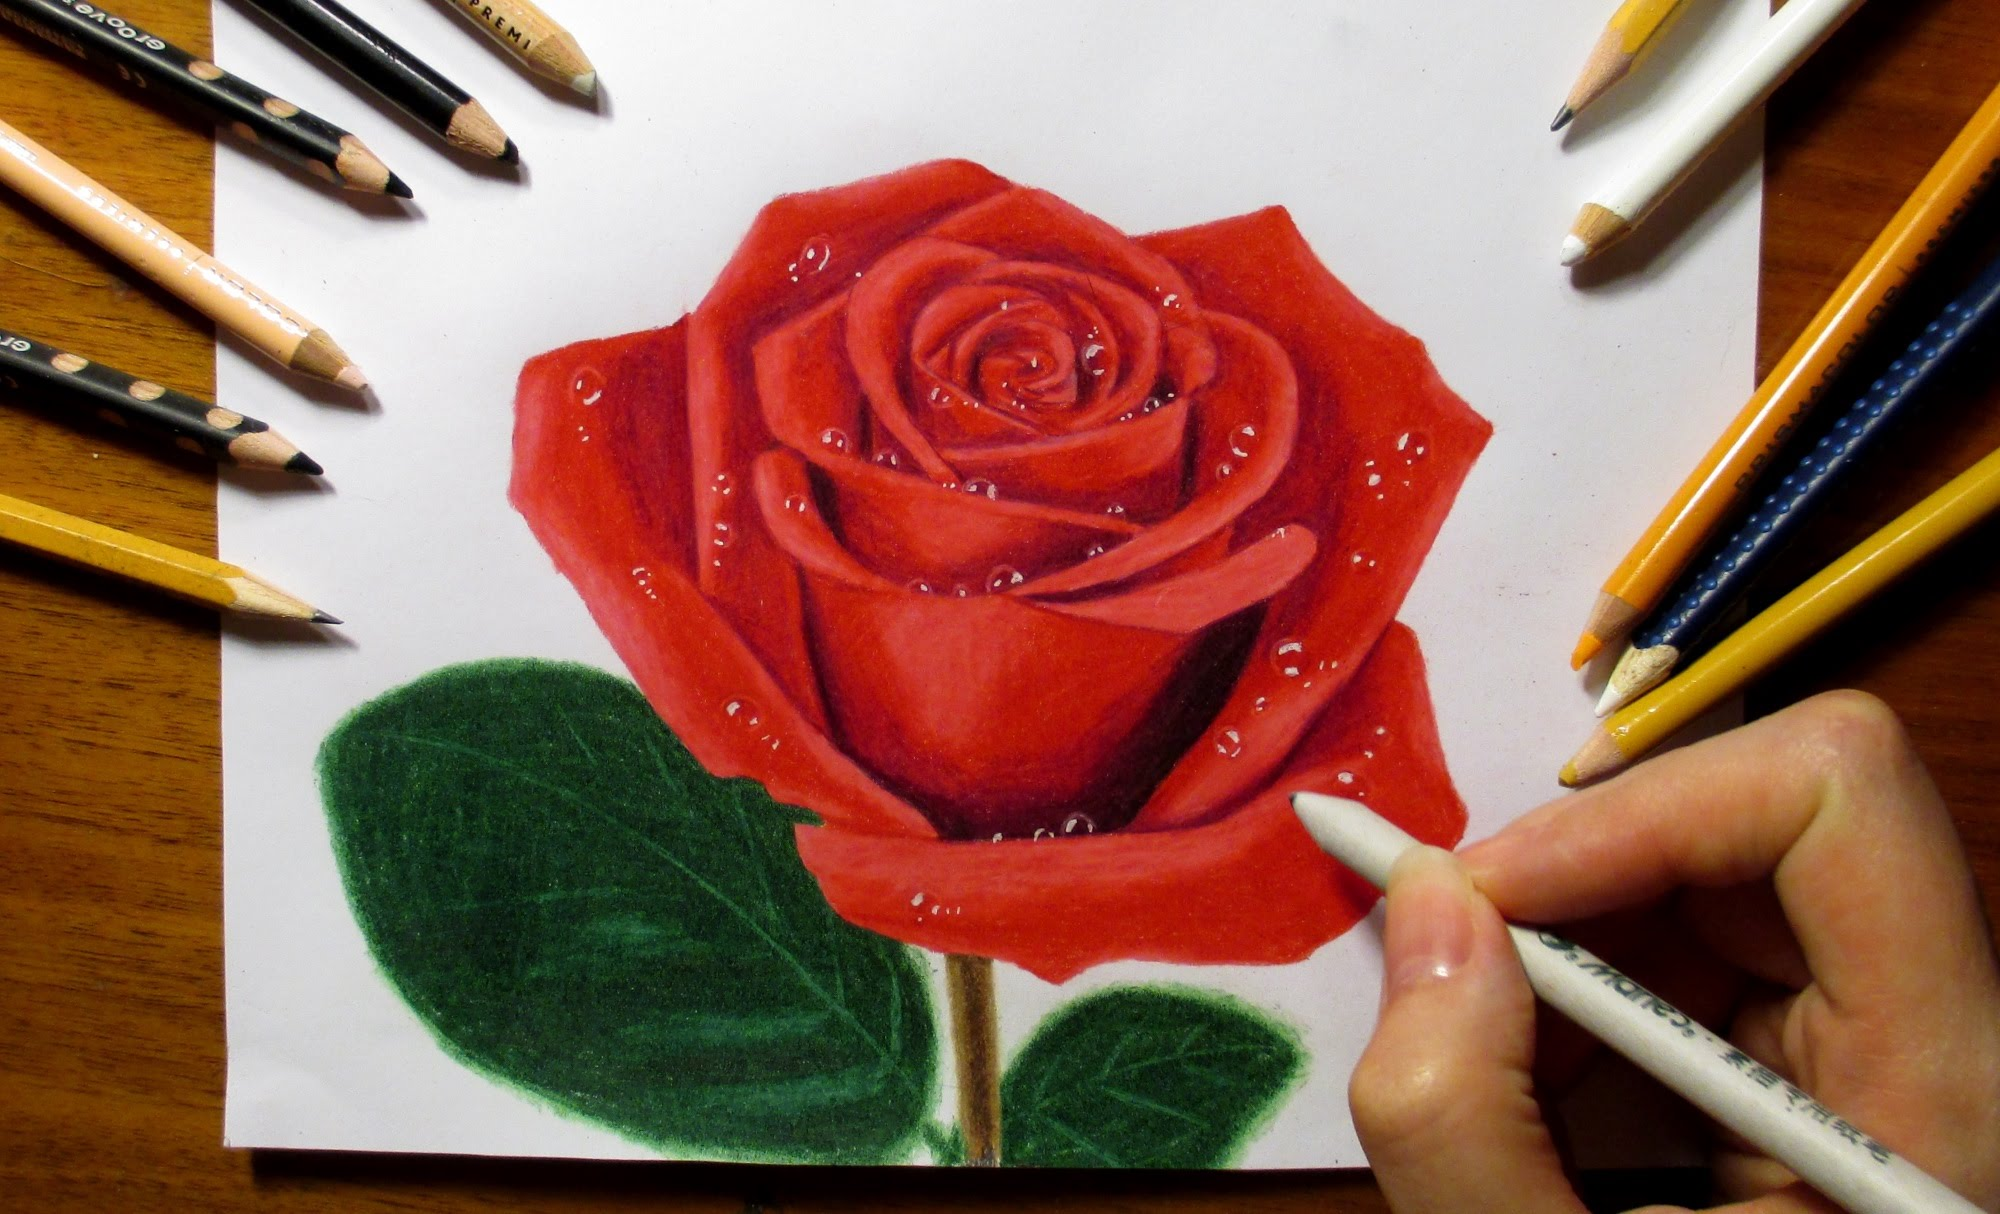 Drawn rose colorful flower With Pencils Rose Colored Colored